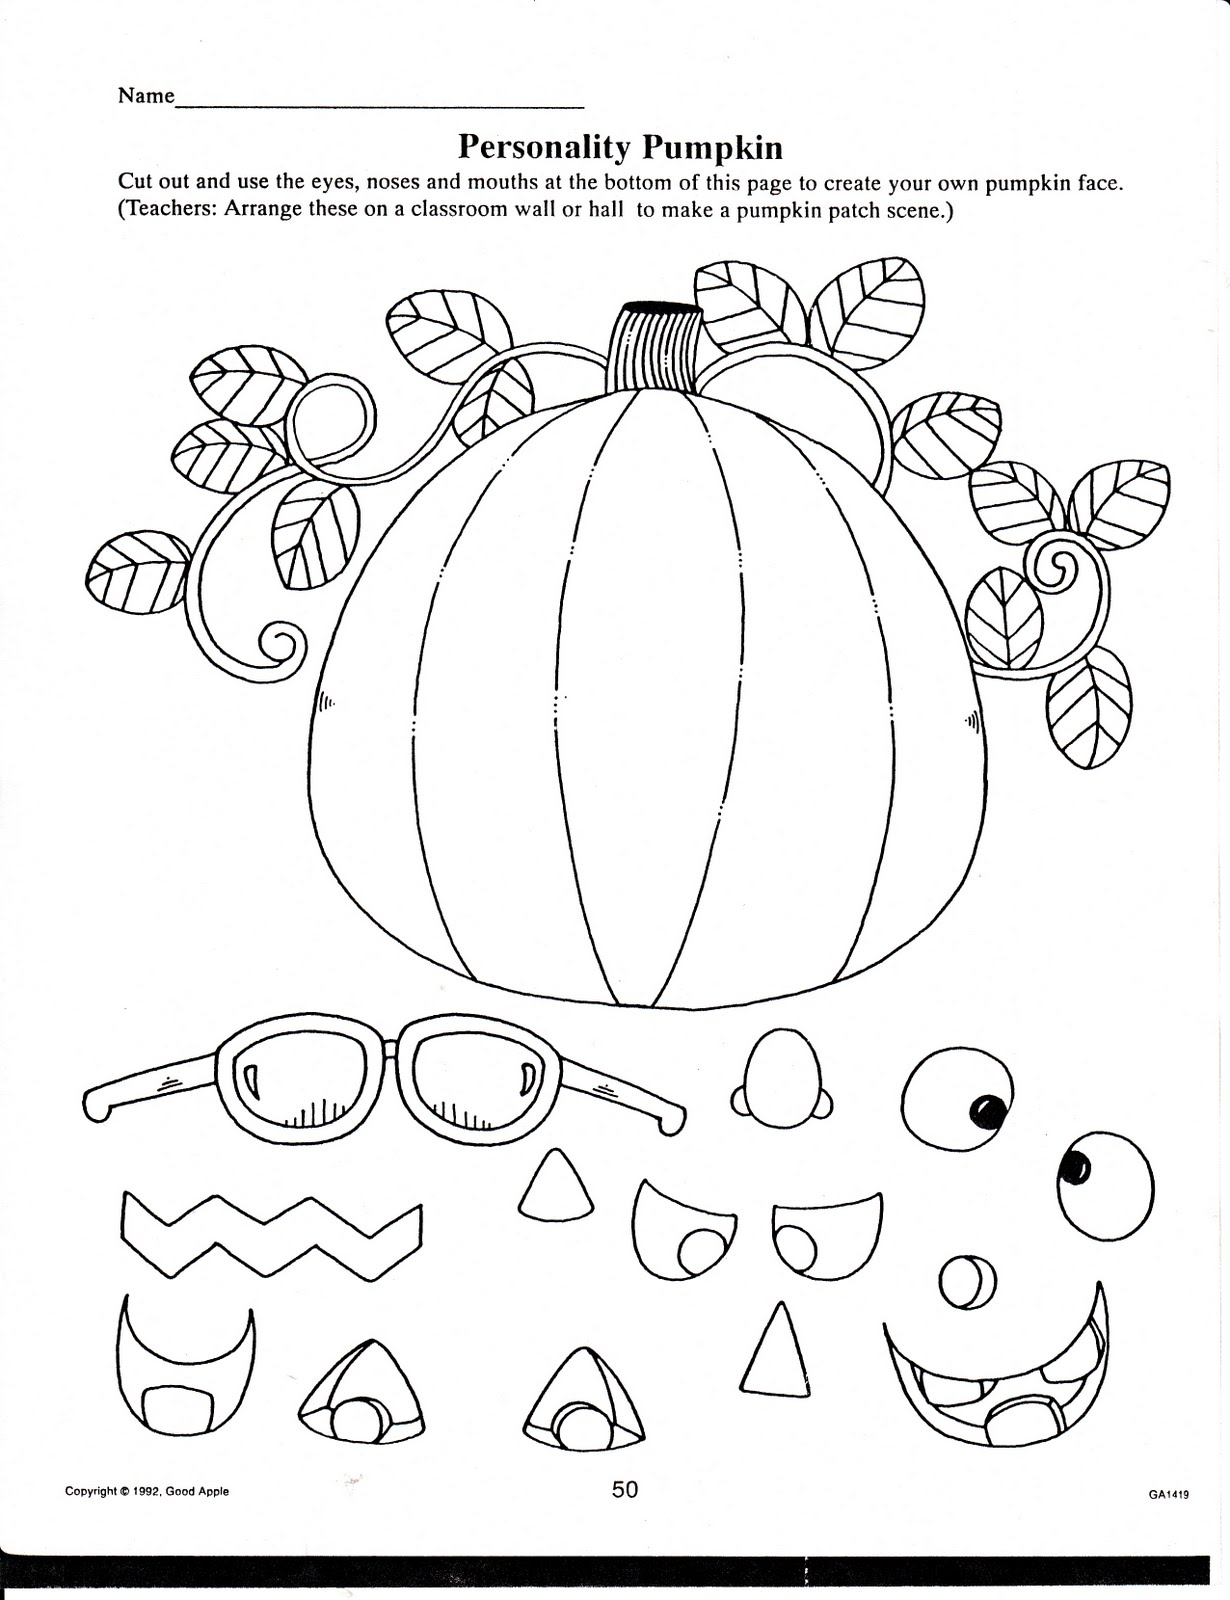 Old Fashioned image for fun printable activities